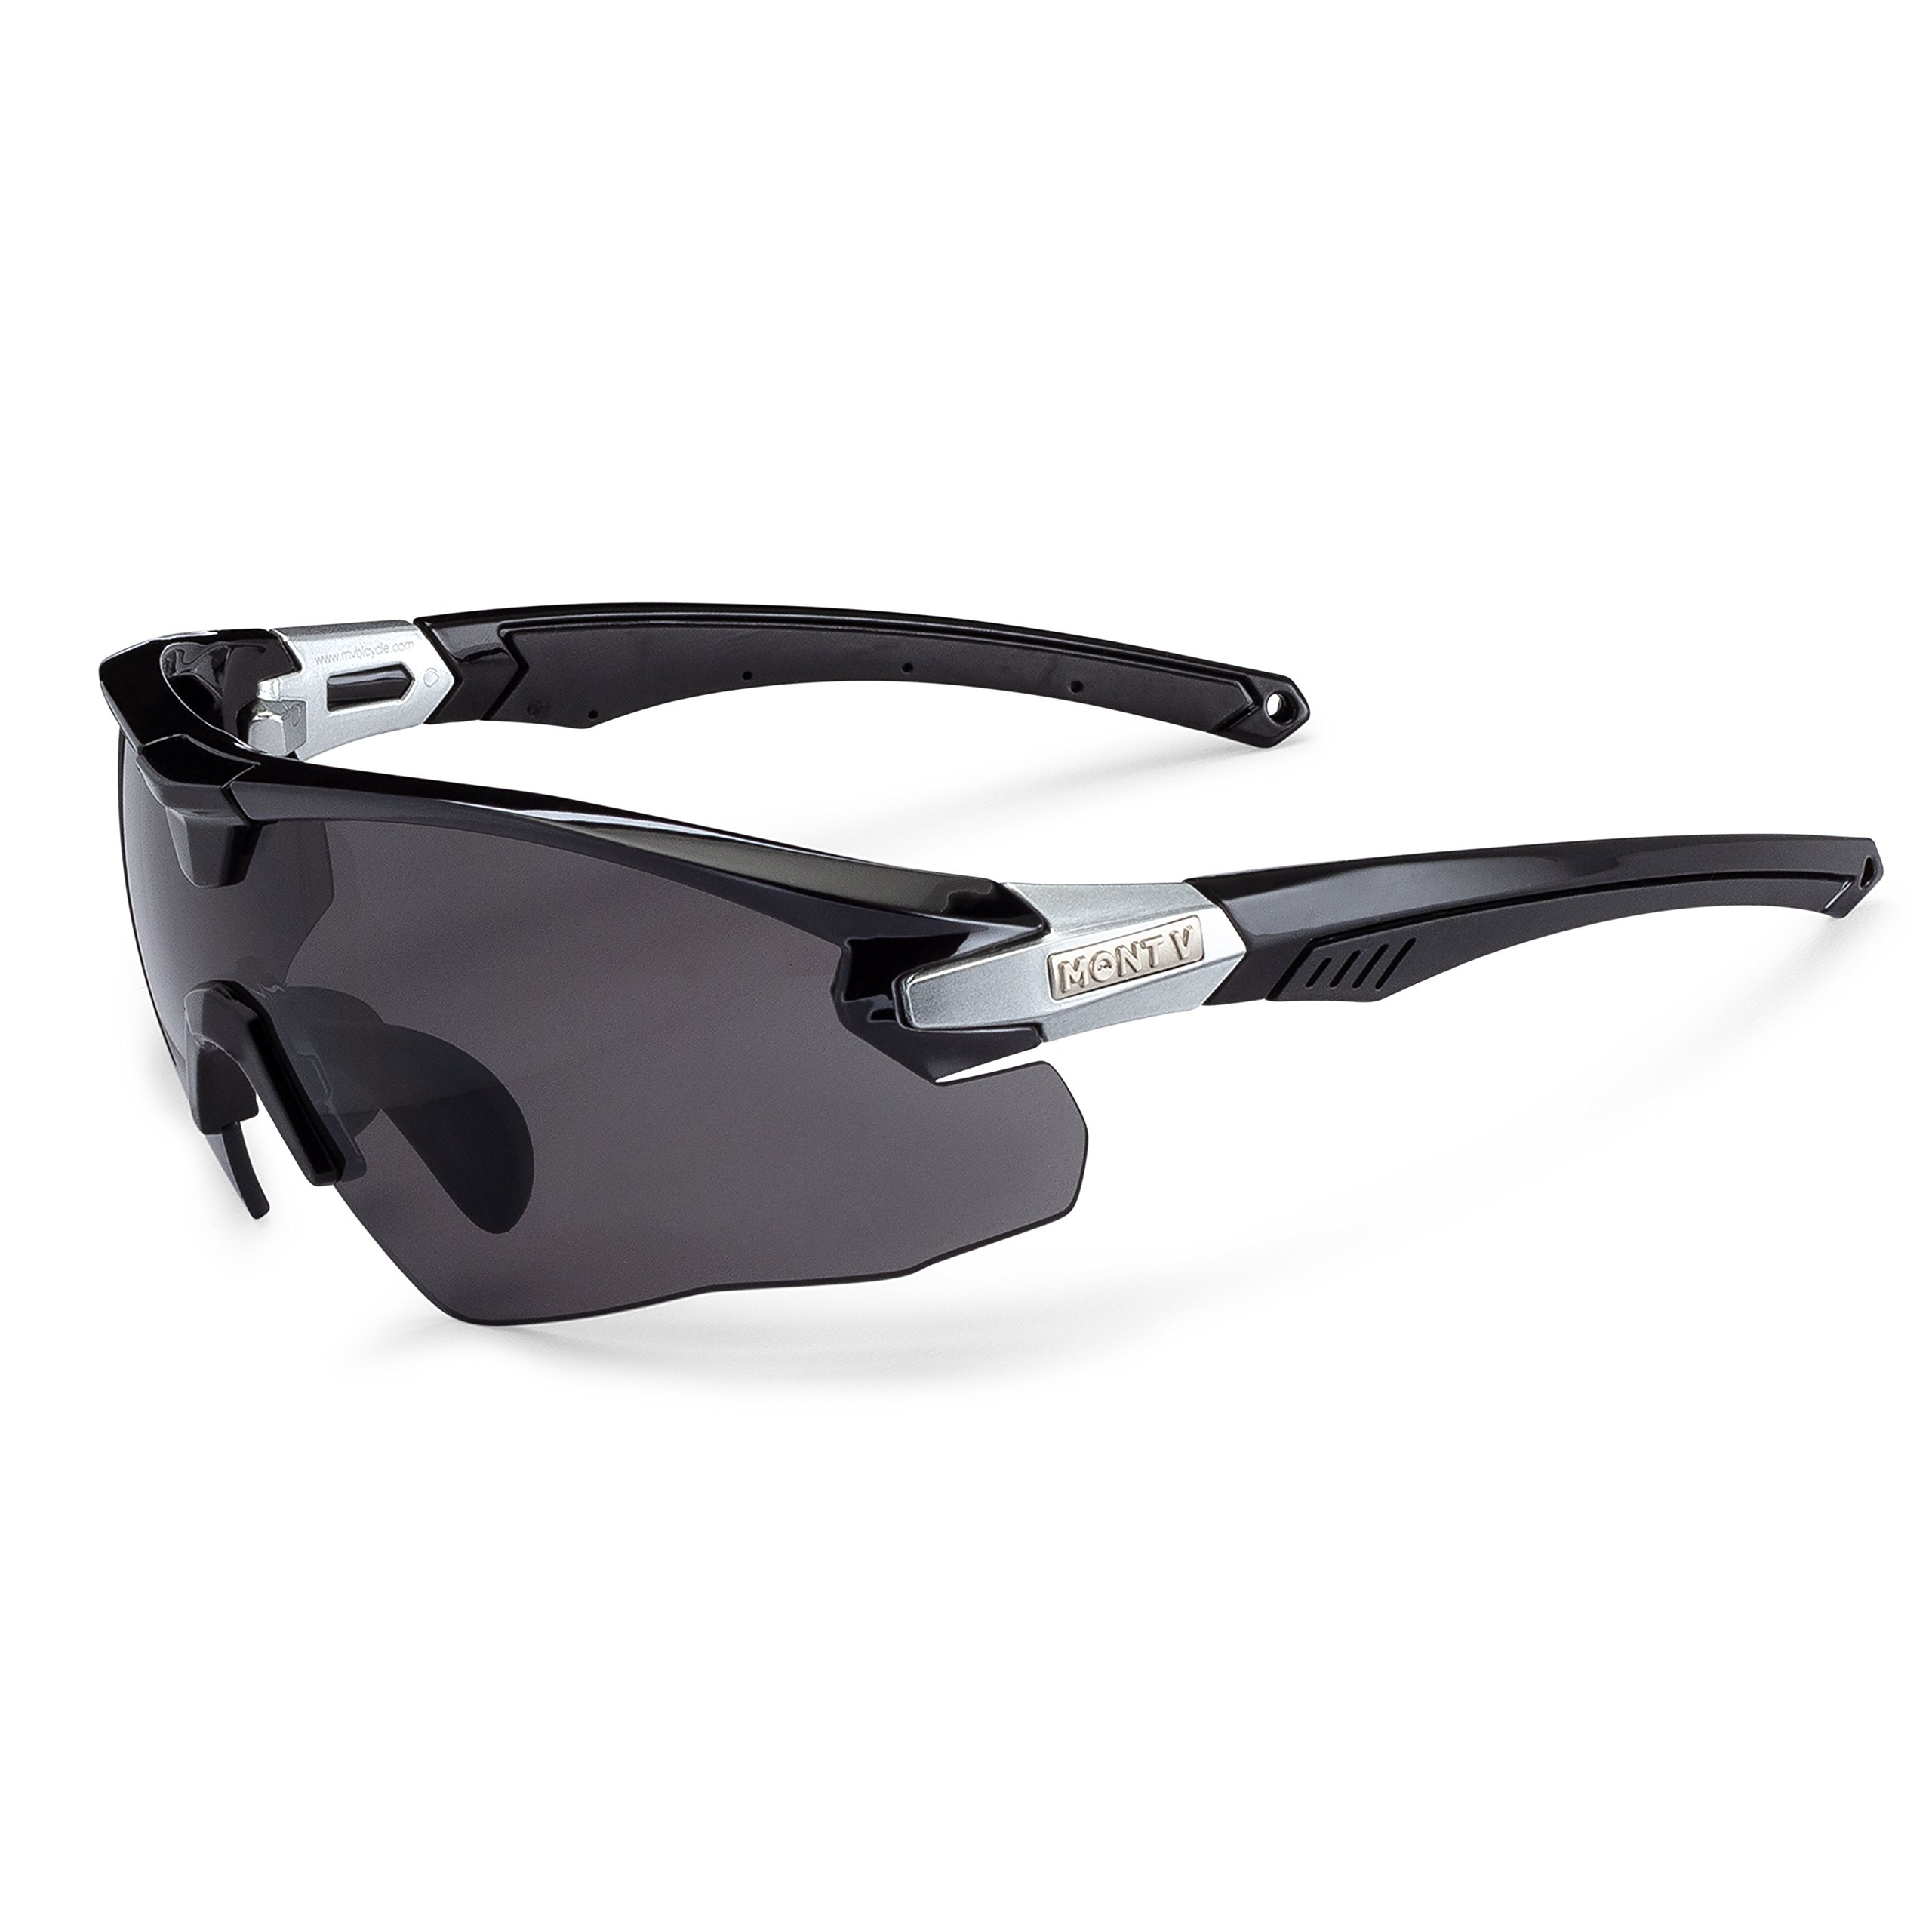 Mont Ventoux Sport Sunglasses for Women Men - Cycling Running Shooting Golf Fishing Baseball Driving Hiking 100% UV Protection Adjustable Nose Pads TR90 NZZ Unbreakable Frame